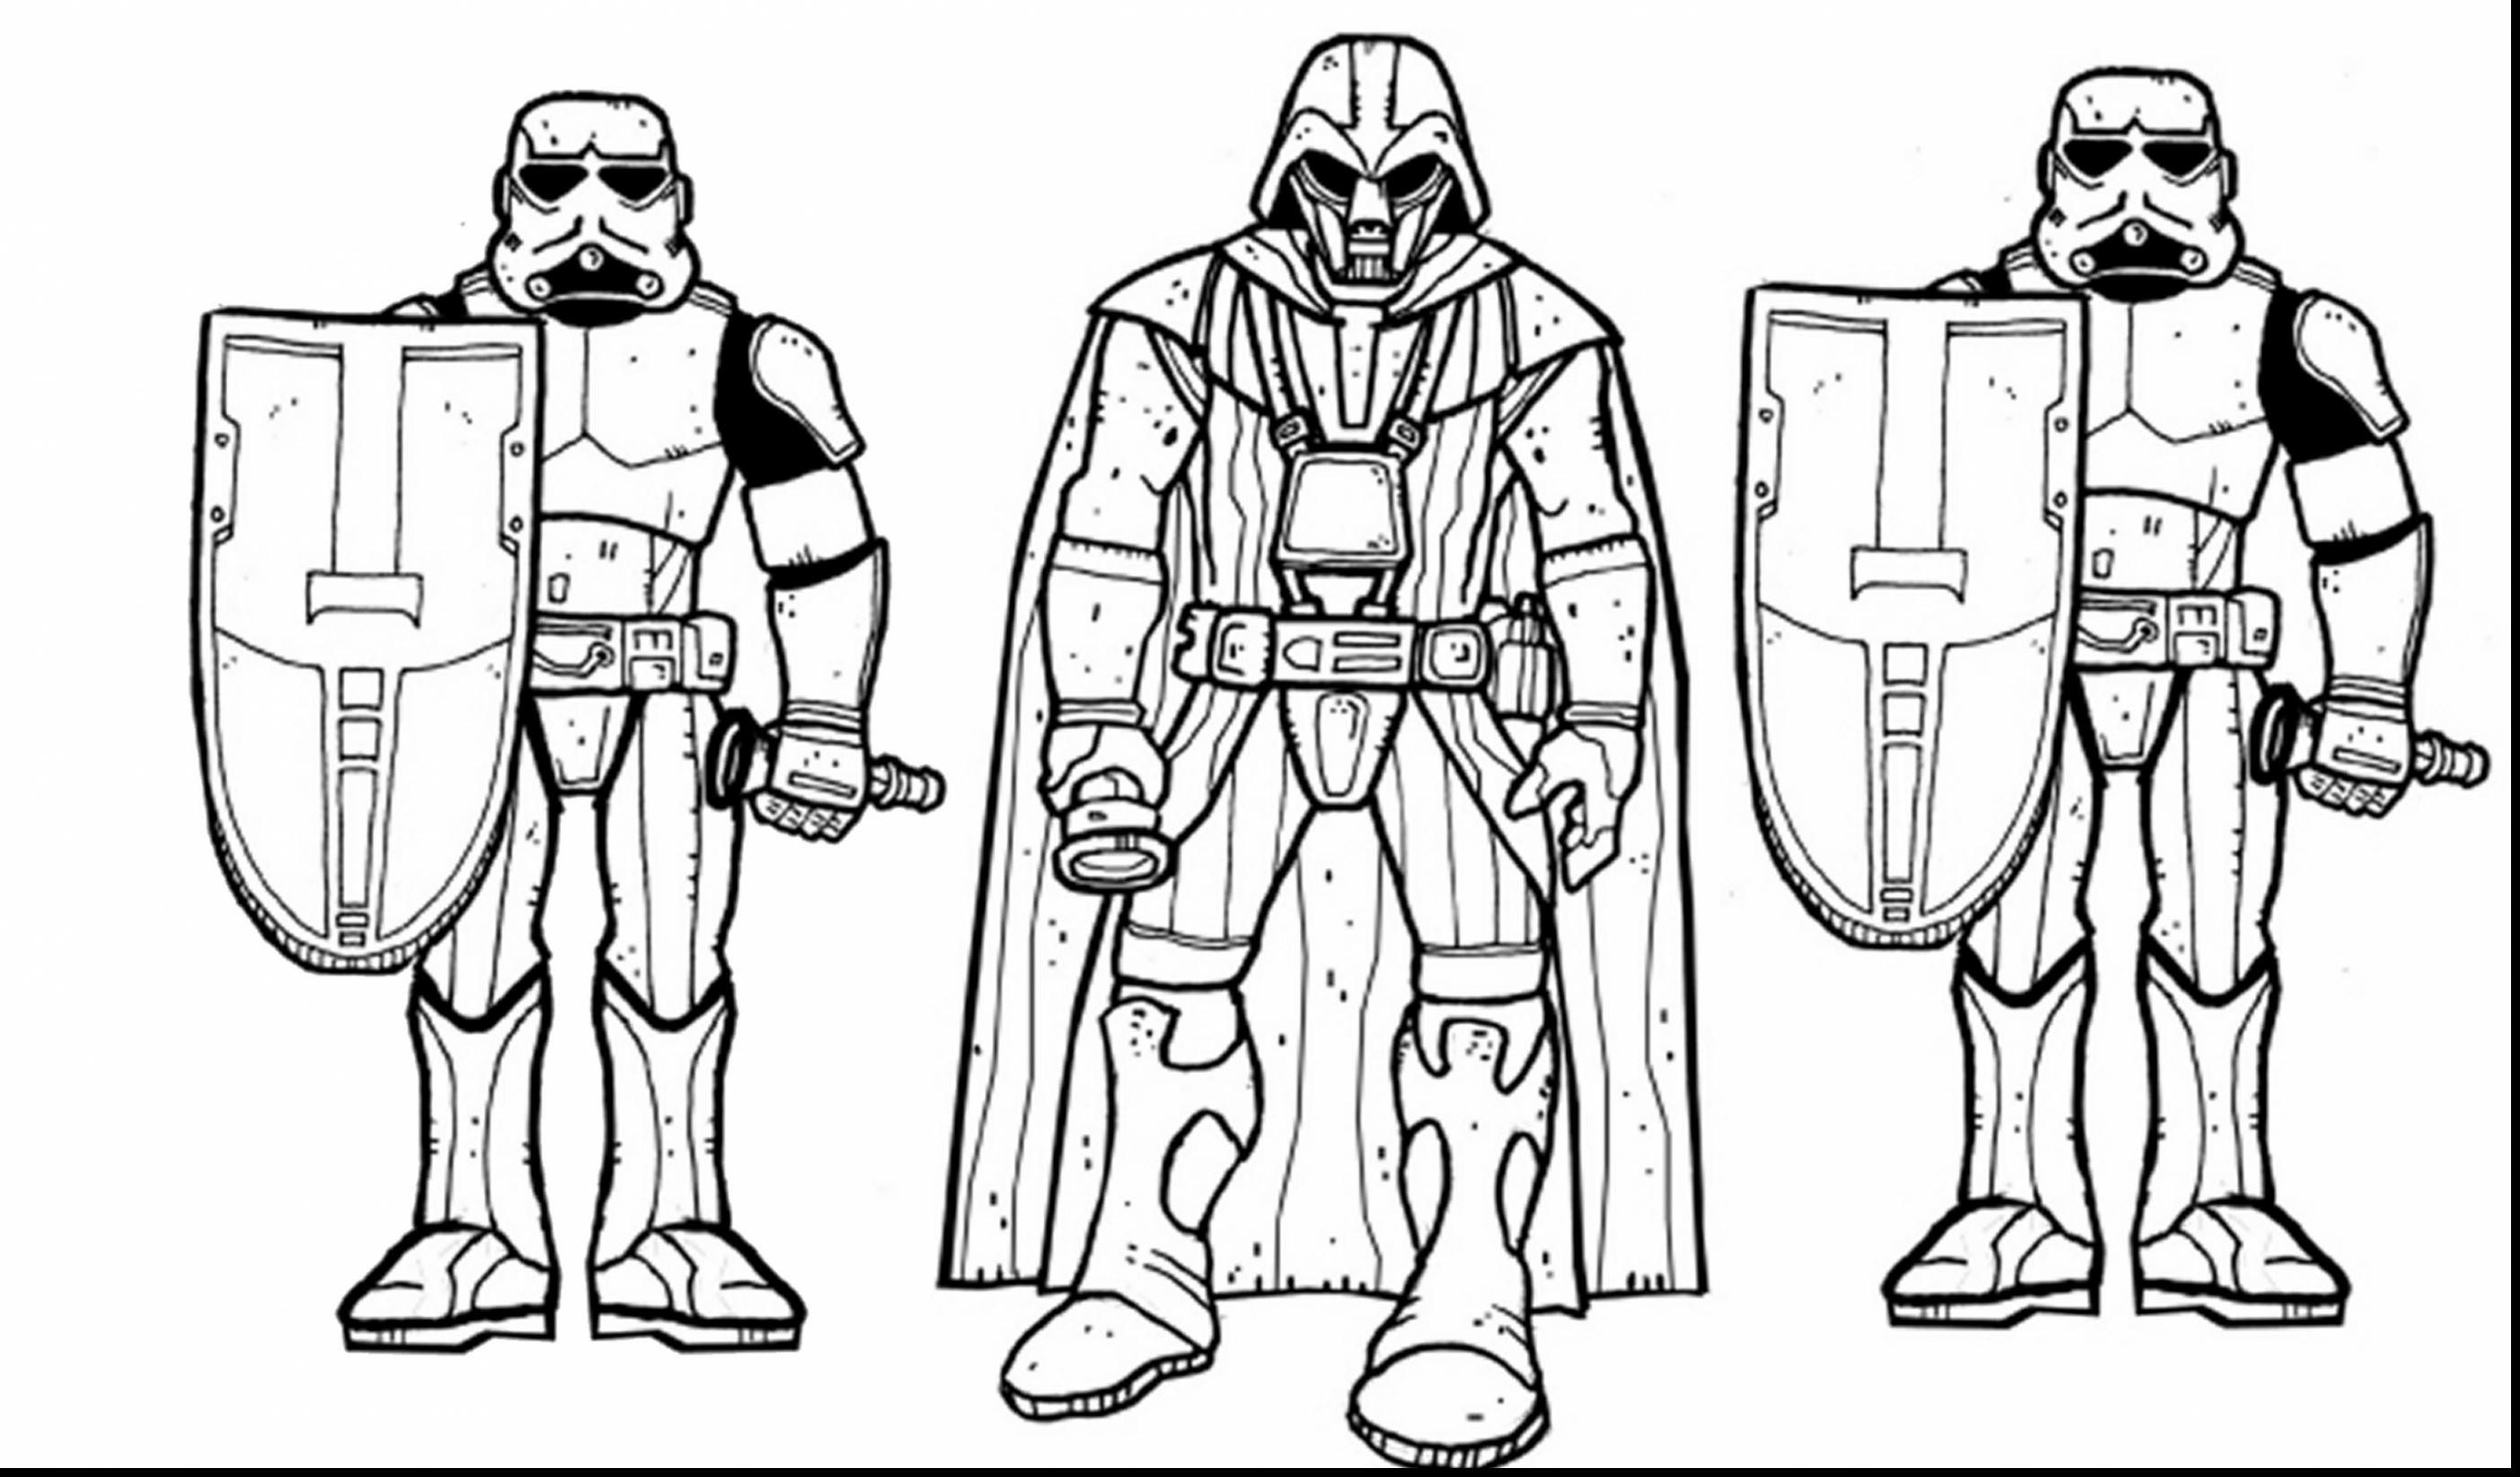 Lego star wars darth vader coloring pages at getdrawings com free